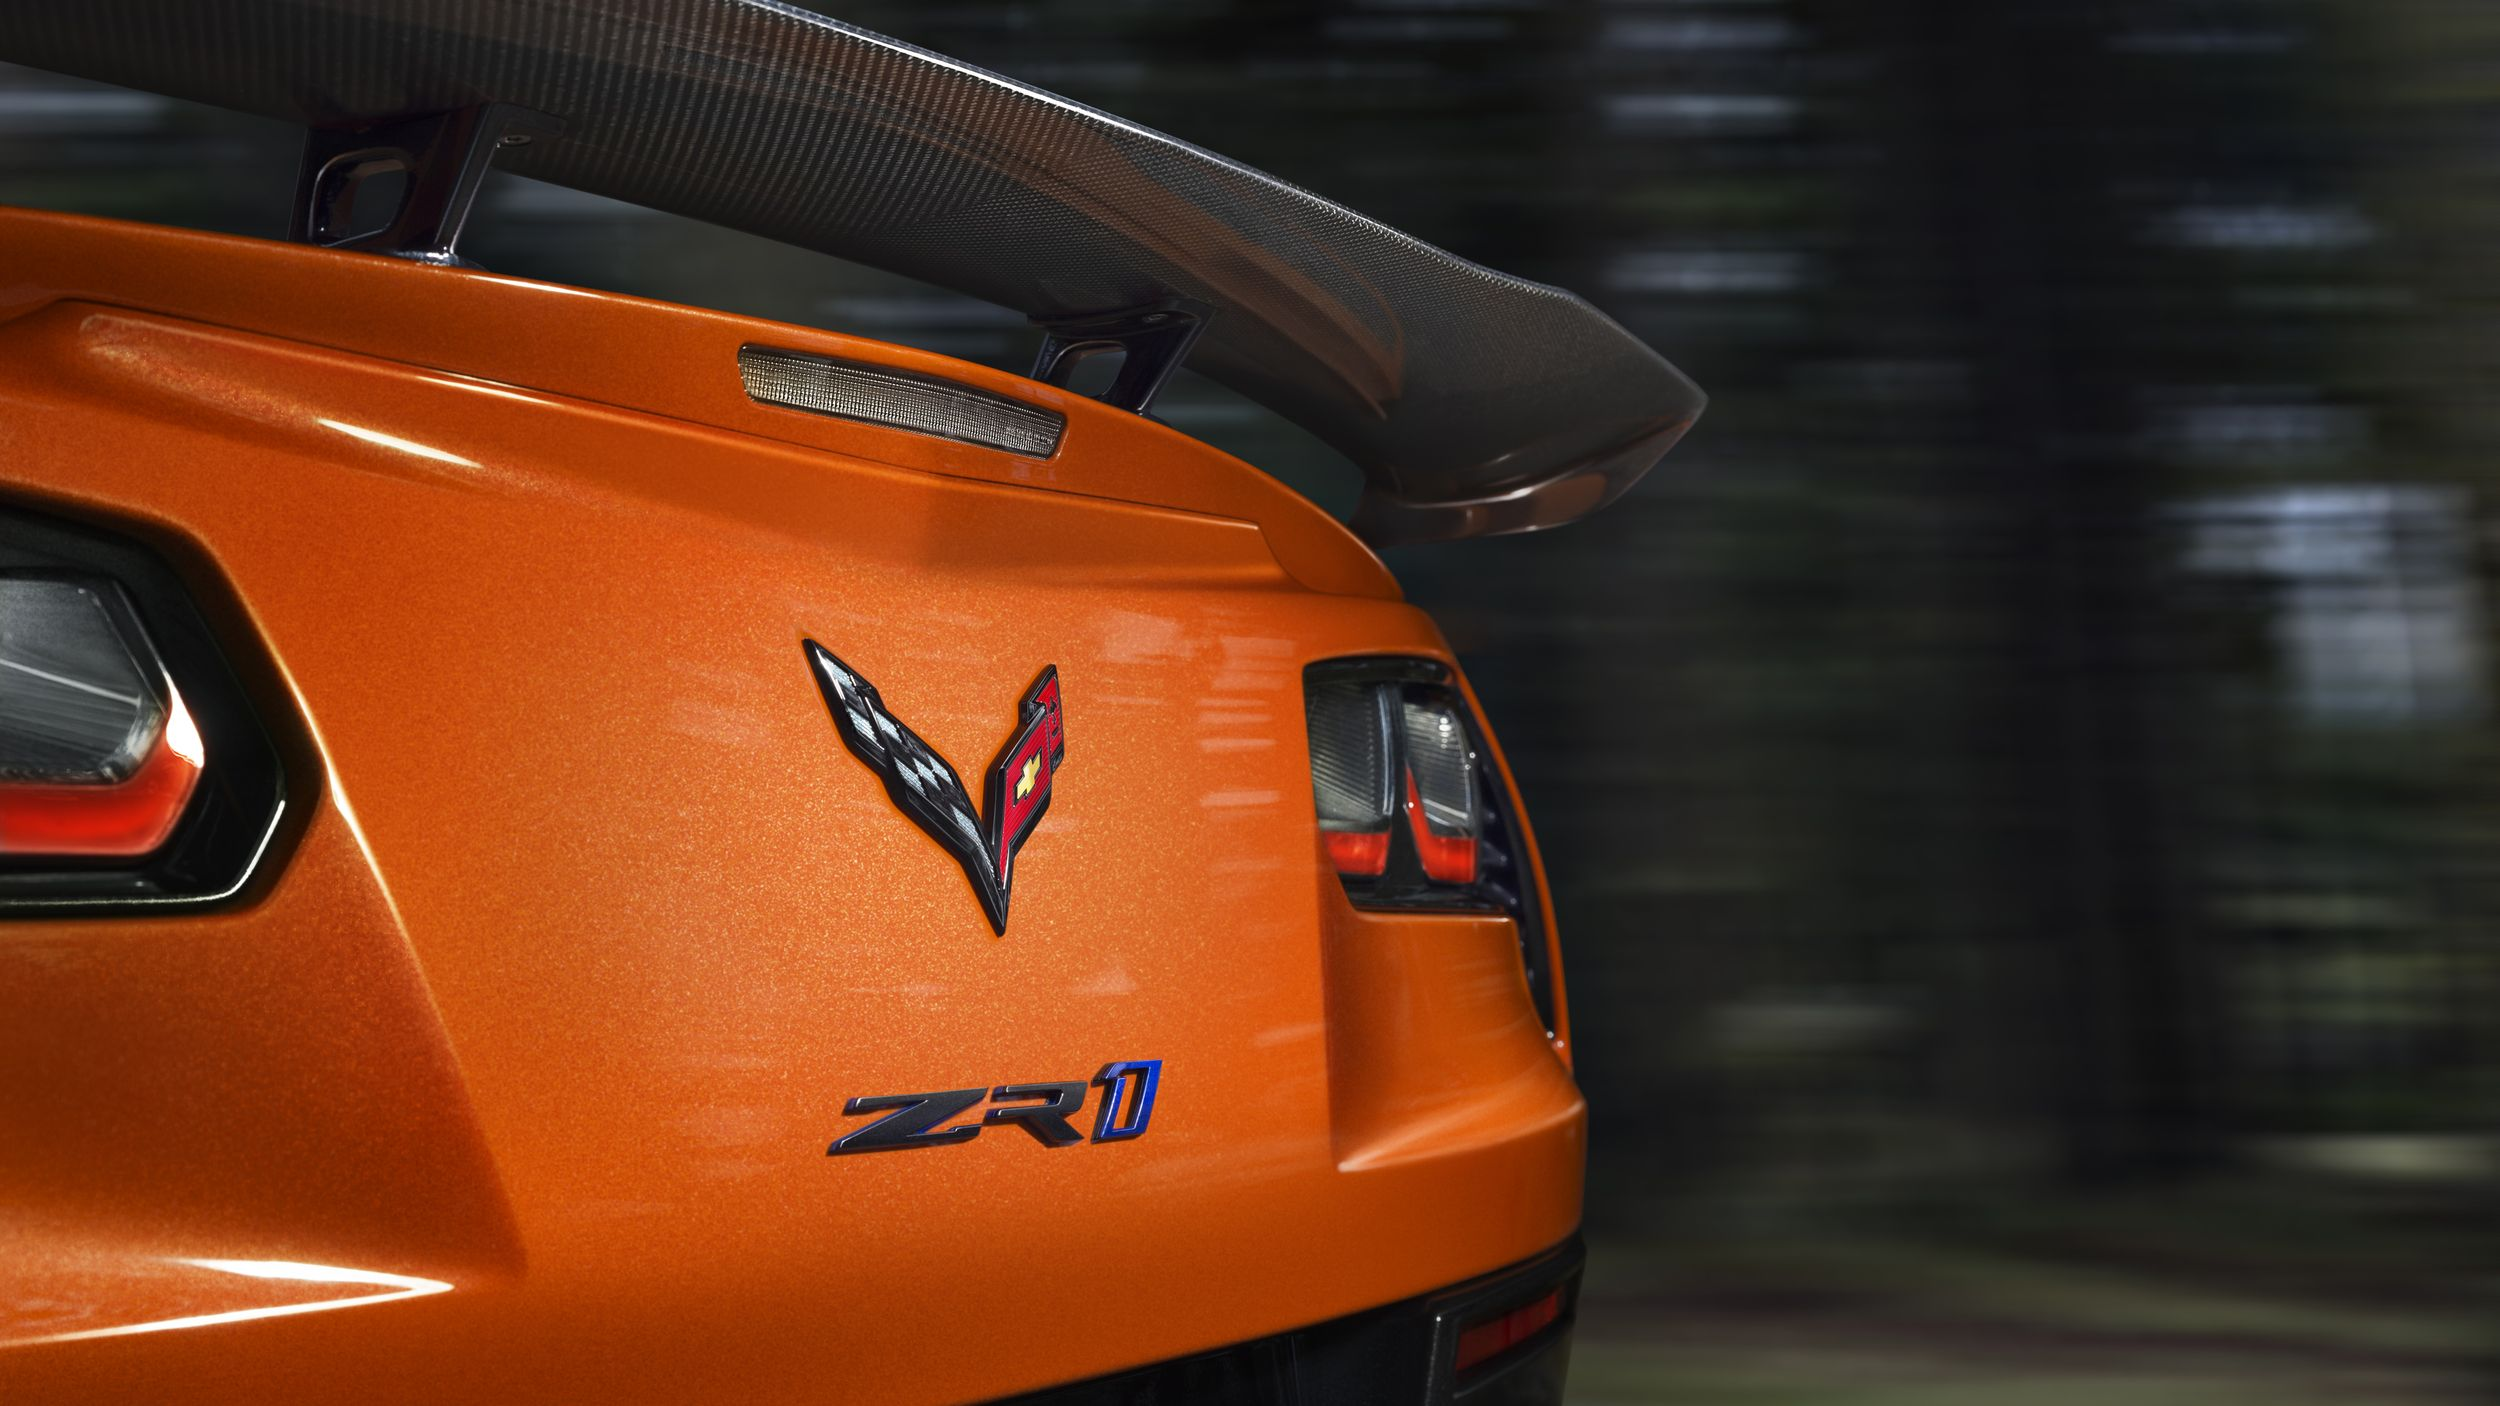 Superieur The 2019 Chevrolet Corvette ZR1u2014Chevyu0027s Latest Contender In The Battle For  Performance Supremacyu2014is Finally Here After Months Of Teases And Leaks.